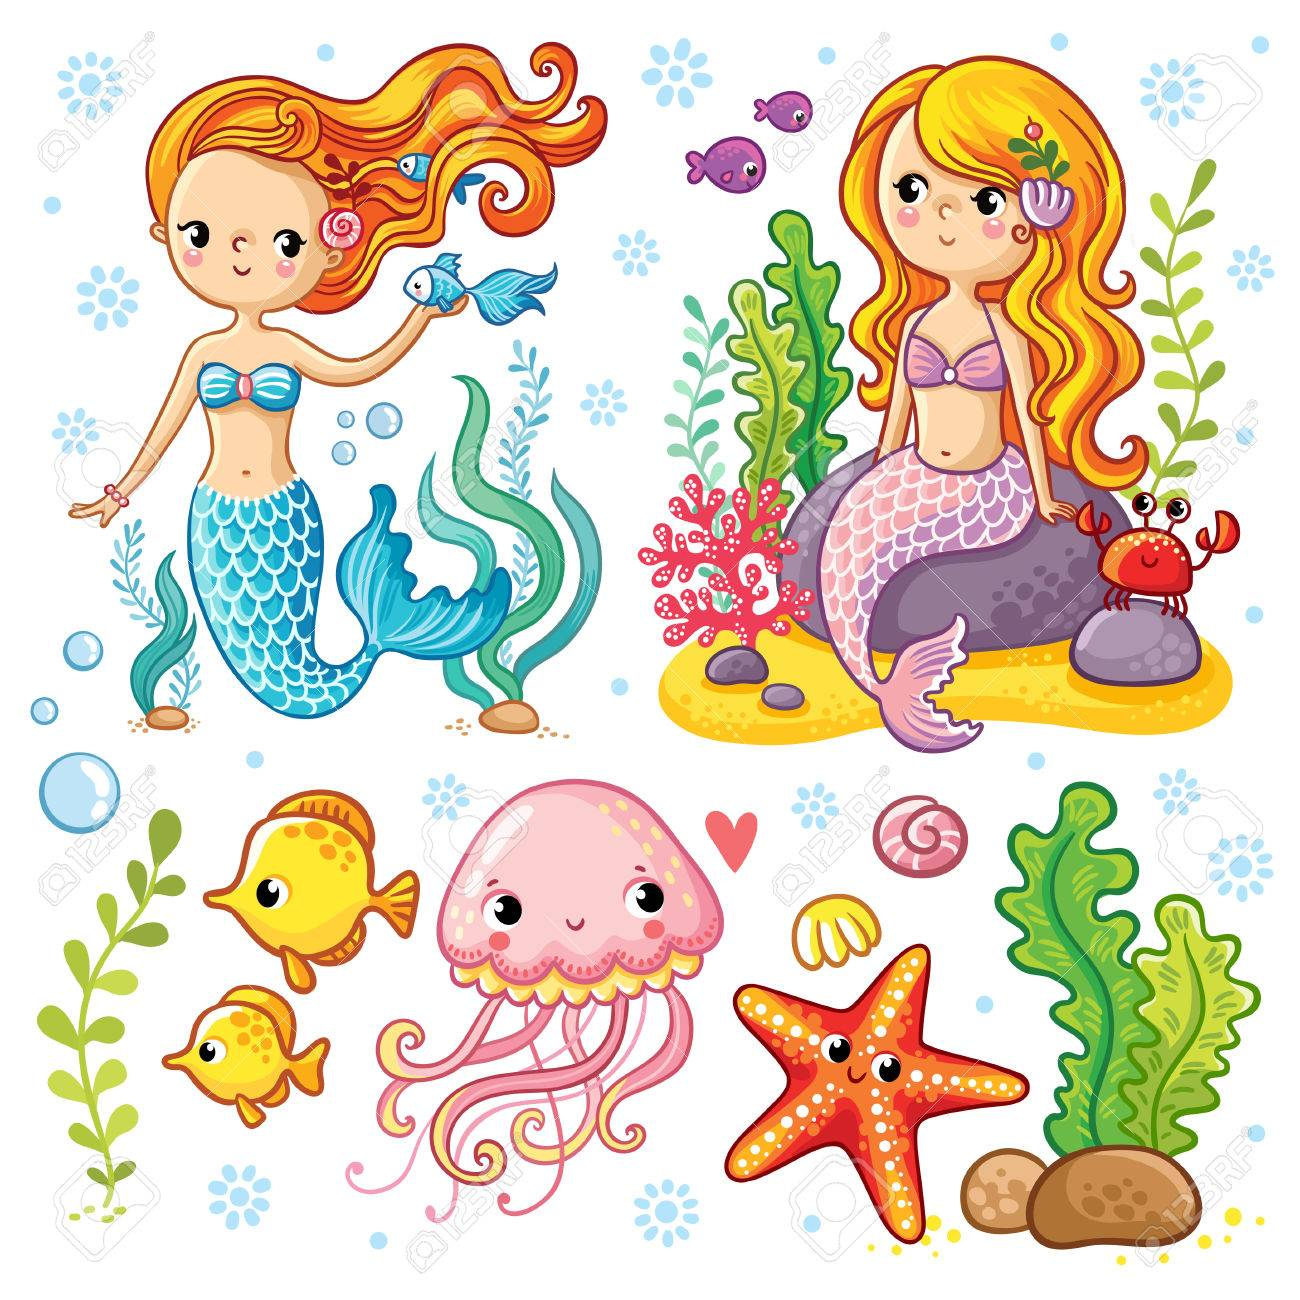 Vector set on the marine theme with mermaids and sea animals made in cartoon style. Mermaid with fish. Mermaid with fish and crab sitting on the rocks. Jellyfish and starfish with seaweed. - 60483711